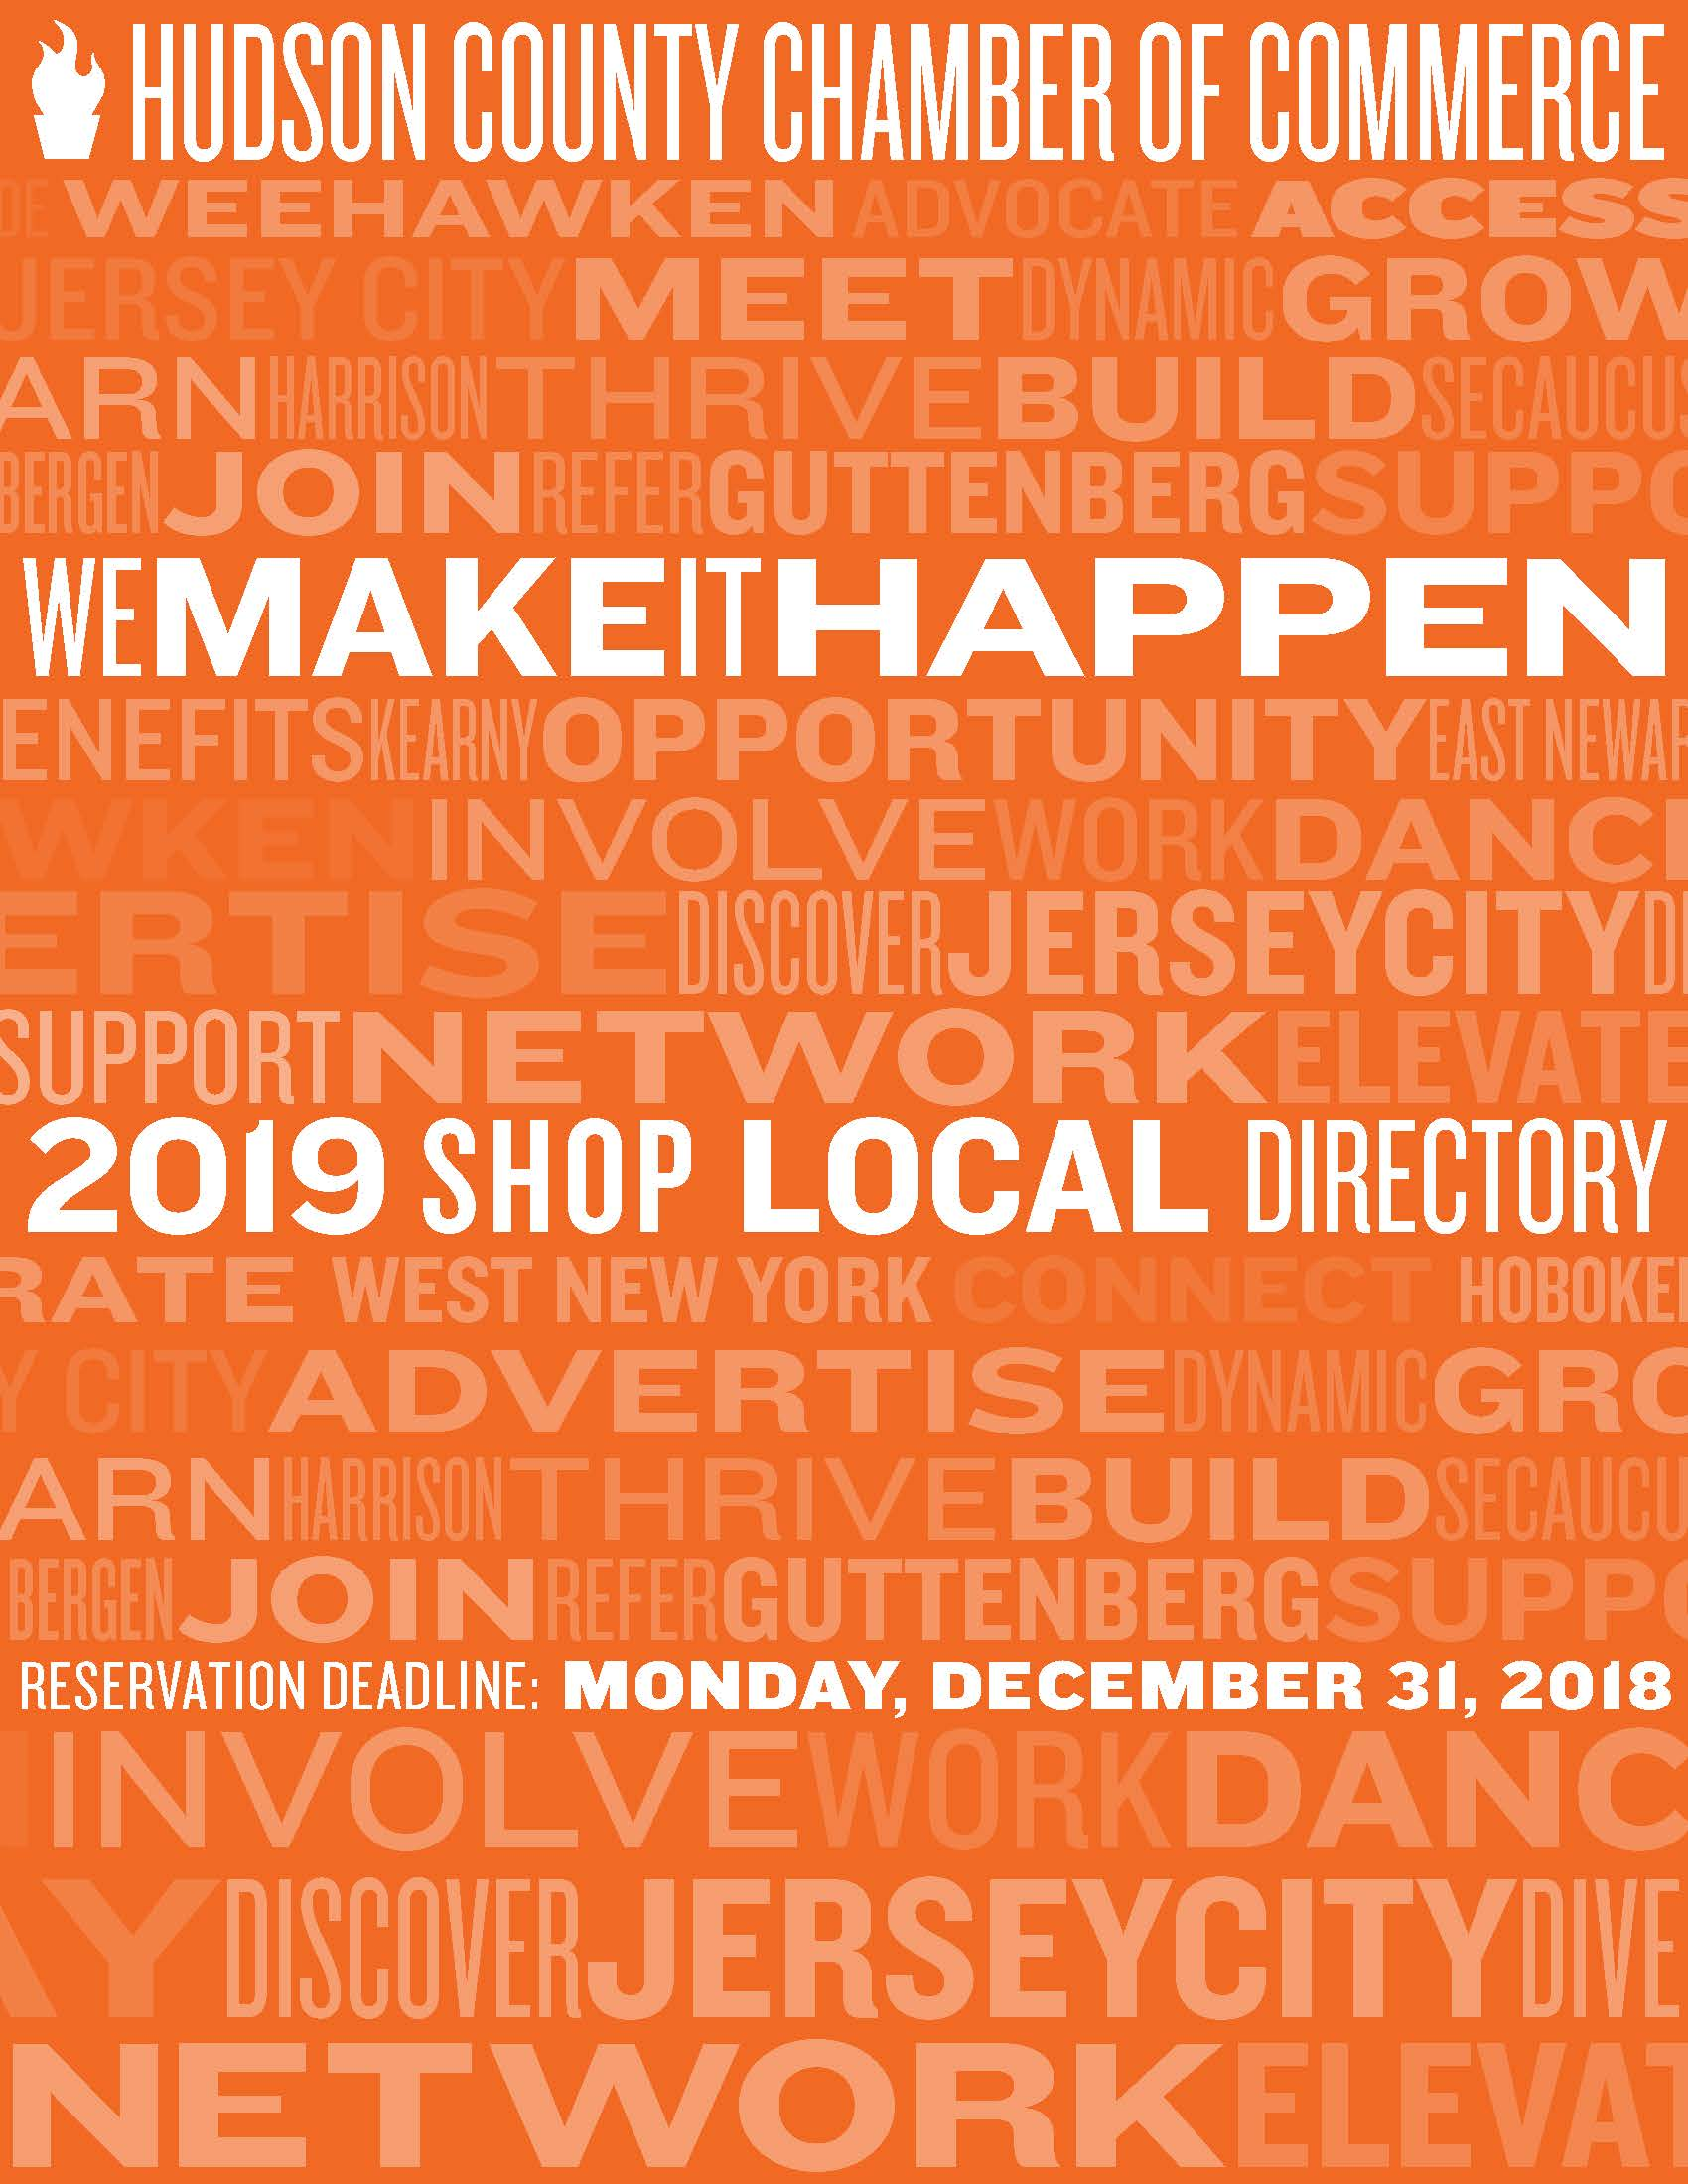 CHAMBER PUBLICATION: Advertise Your Business in the 2019 SHOP LOCAL